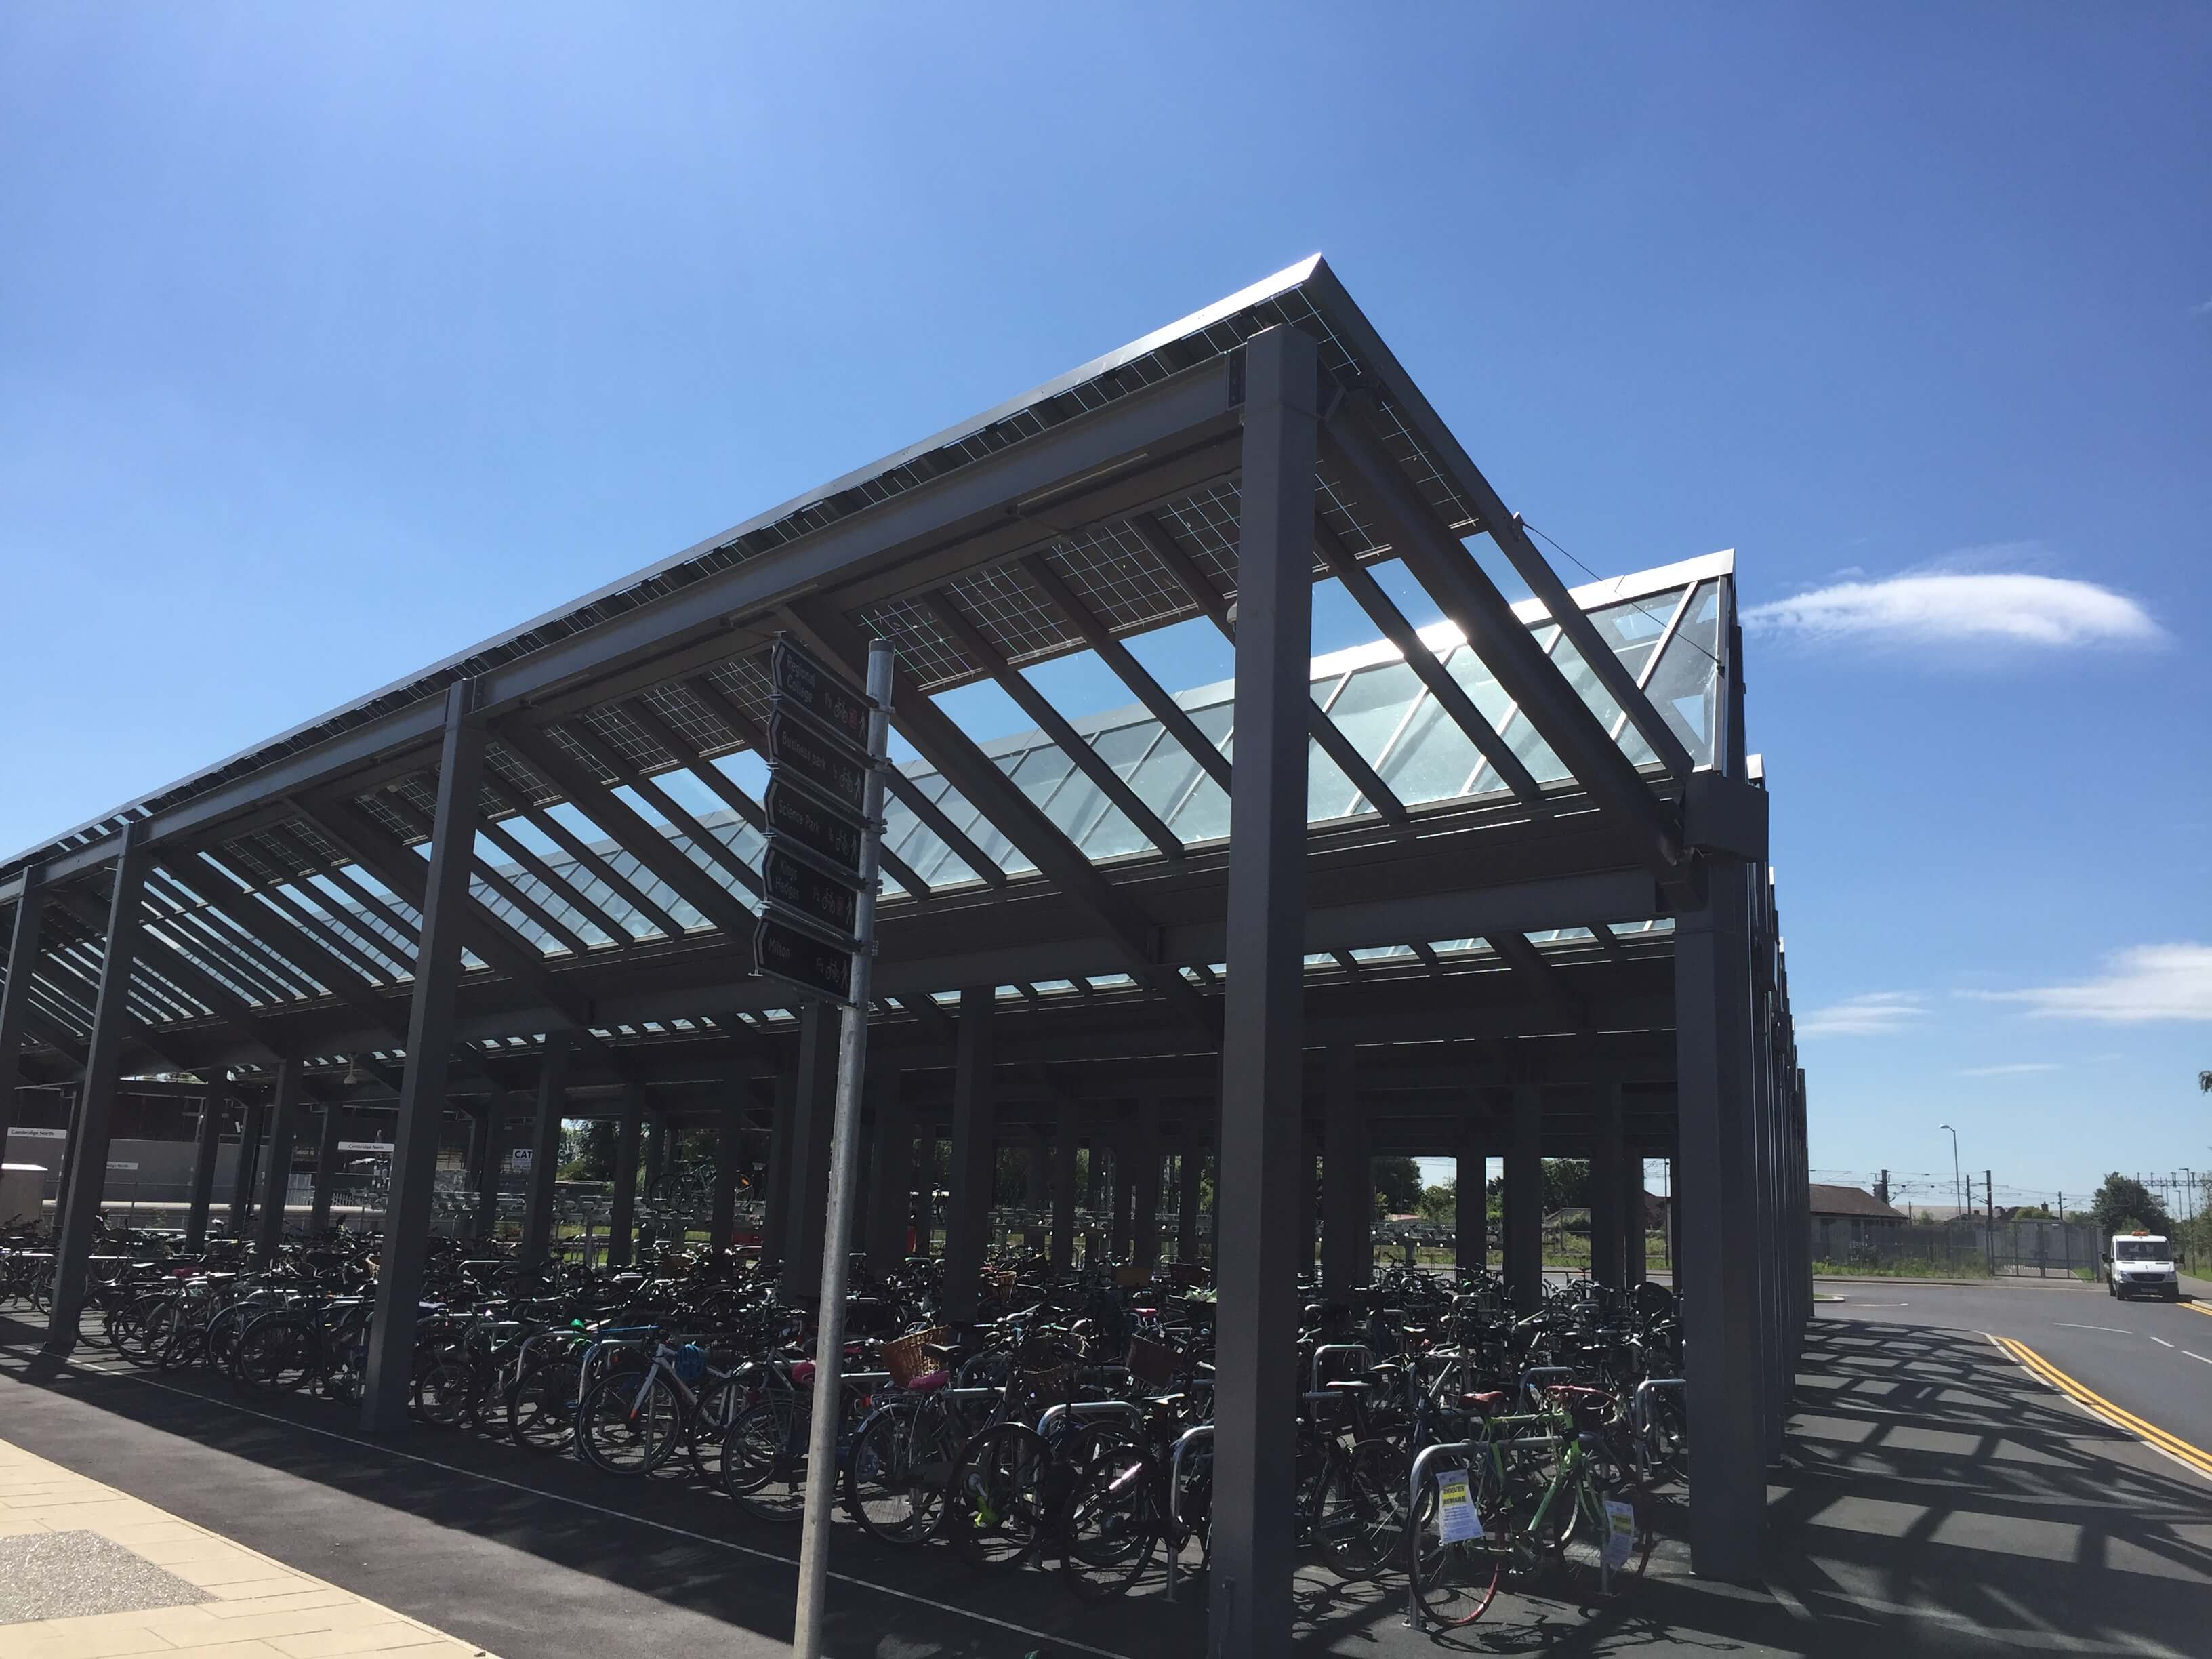 Cambridge North Railway Station Cycle Park